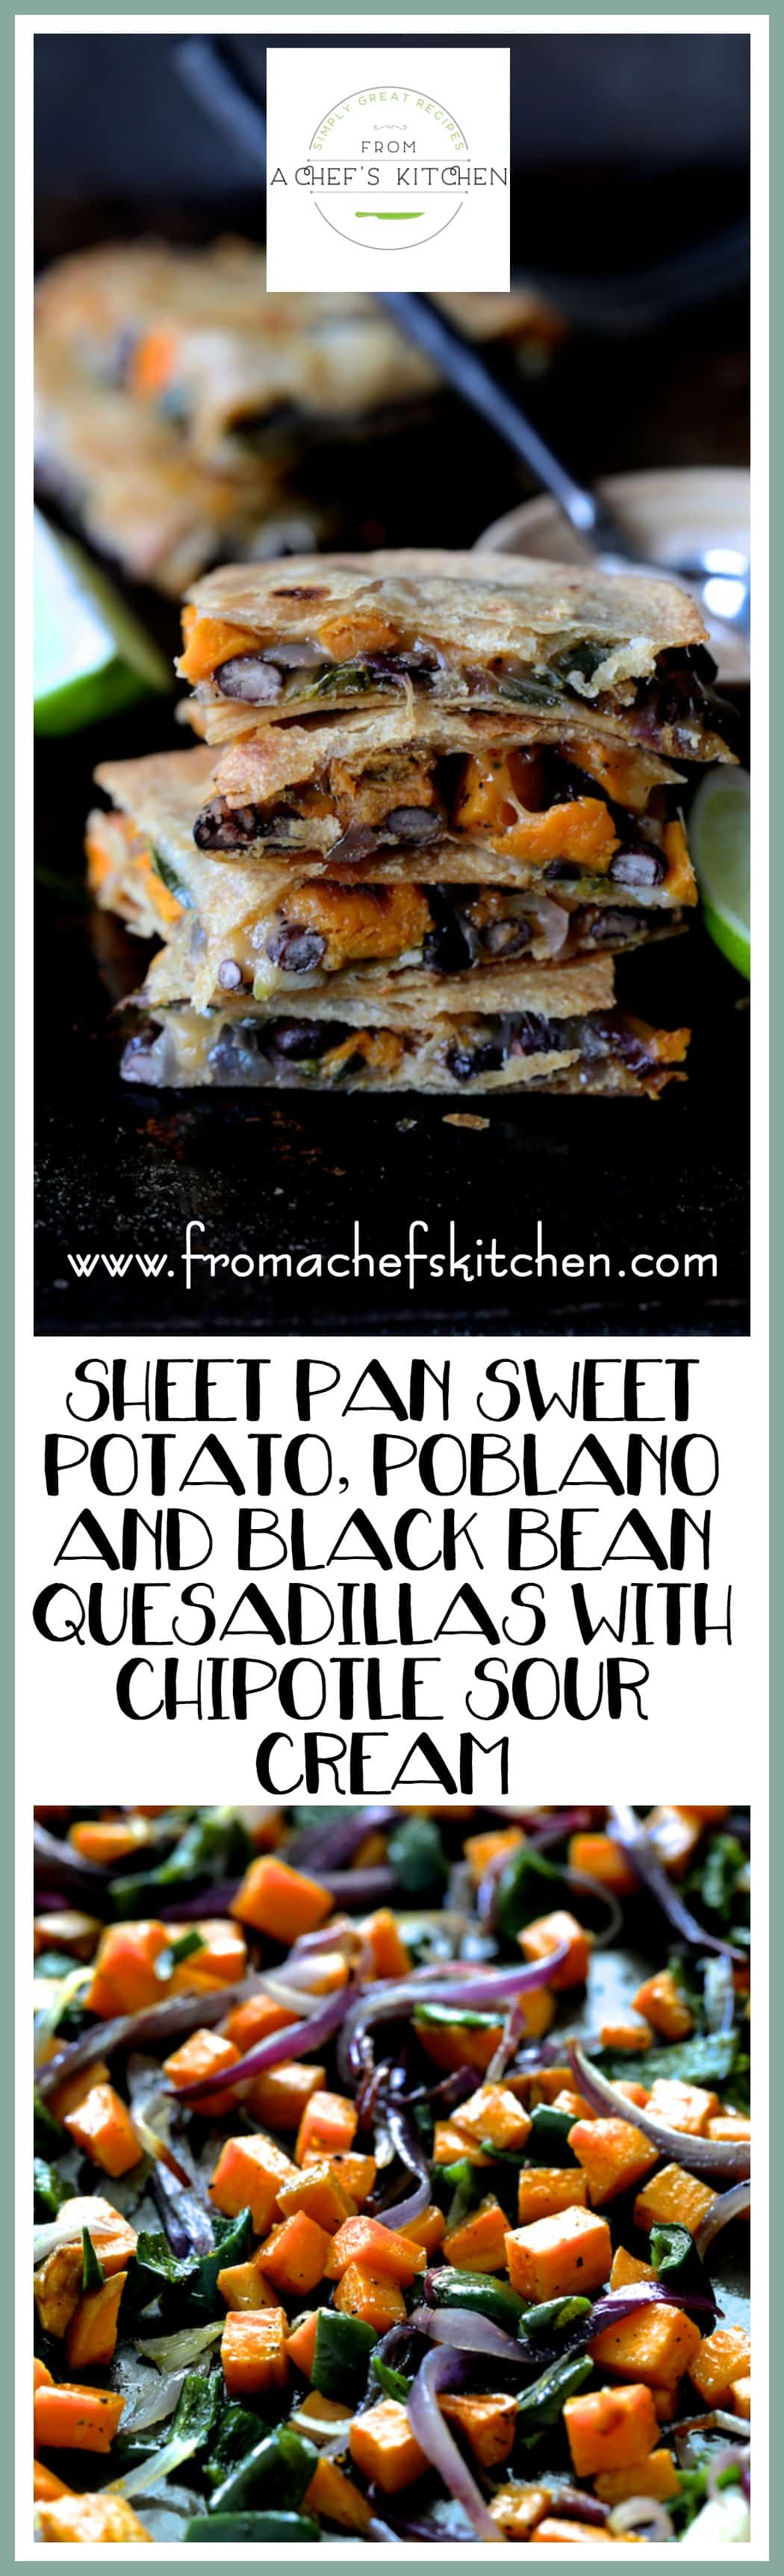 Sheet Pan Quesadillas with Sweet Potatoes, Poblanos and Black Beans with Chipotle Sour Cream are a delicious light vegetarian meal or appetizer!